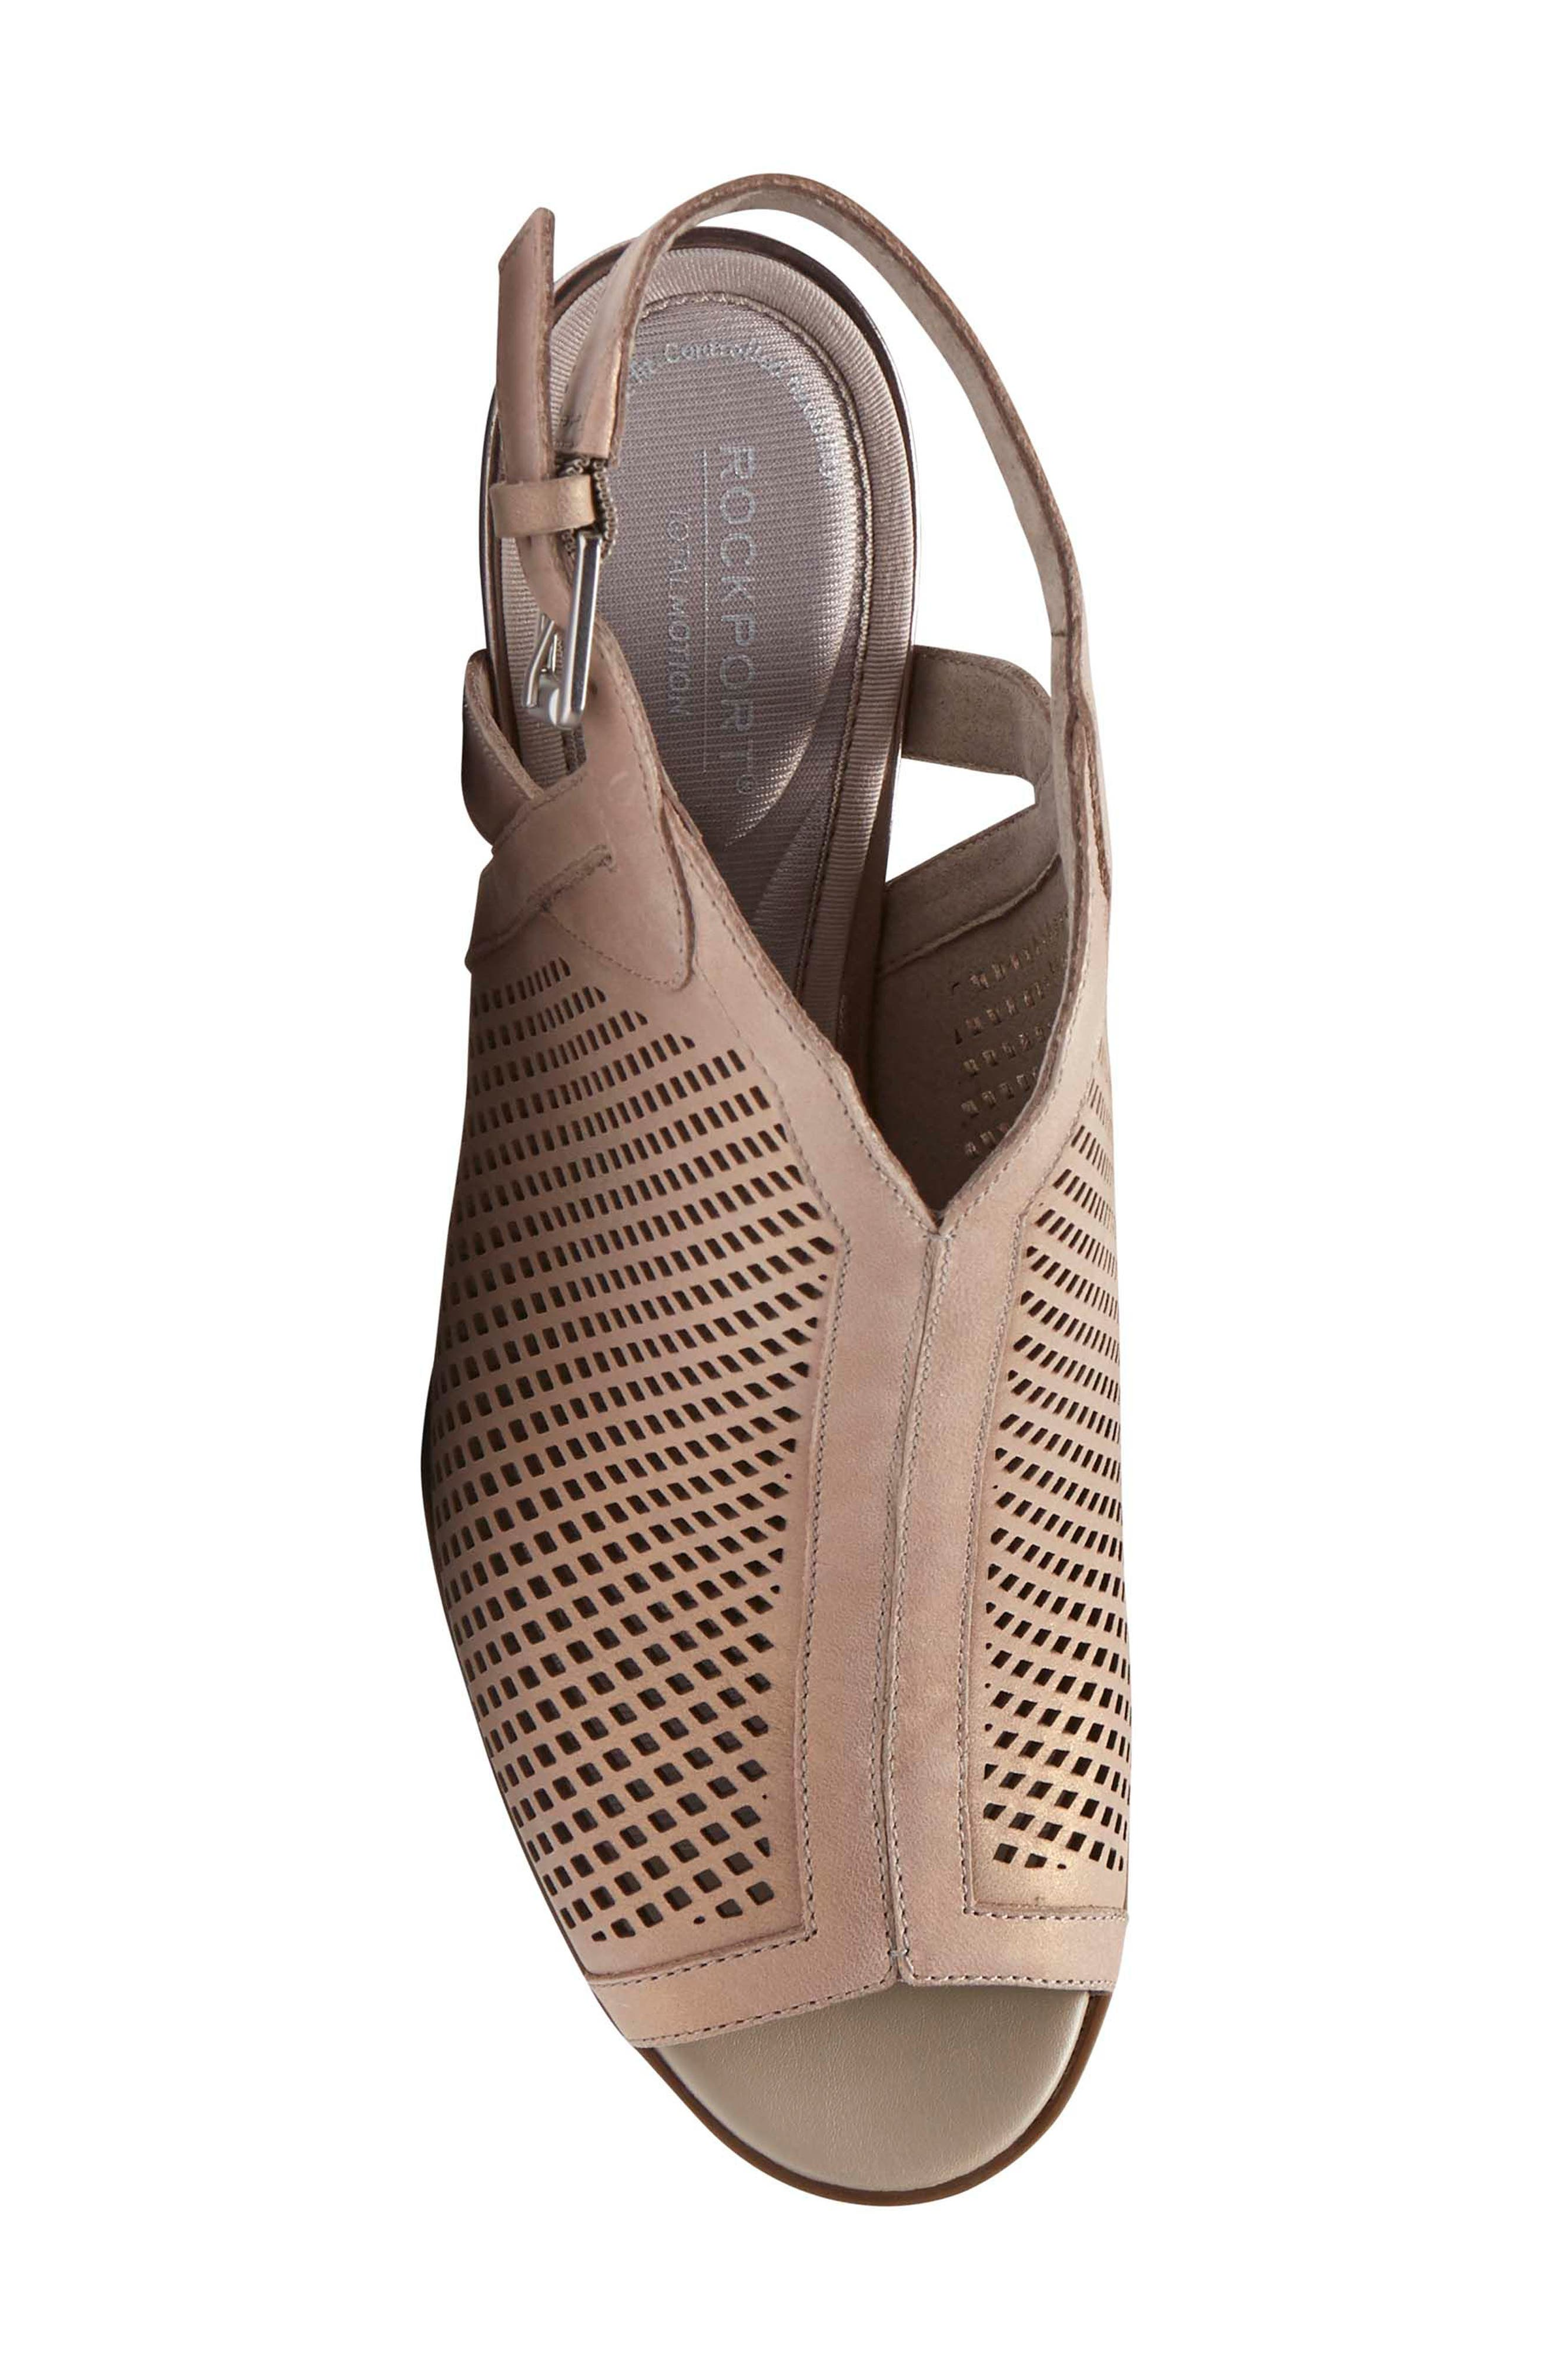 Total Motion Luxe Perforated Sandal,                             Alternate thumbnail 5, color,                             DOVE LEATHER